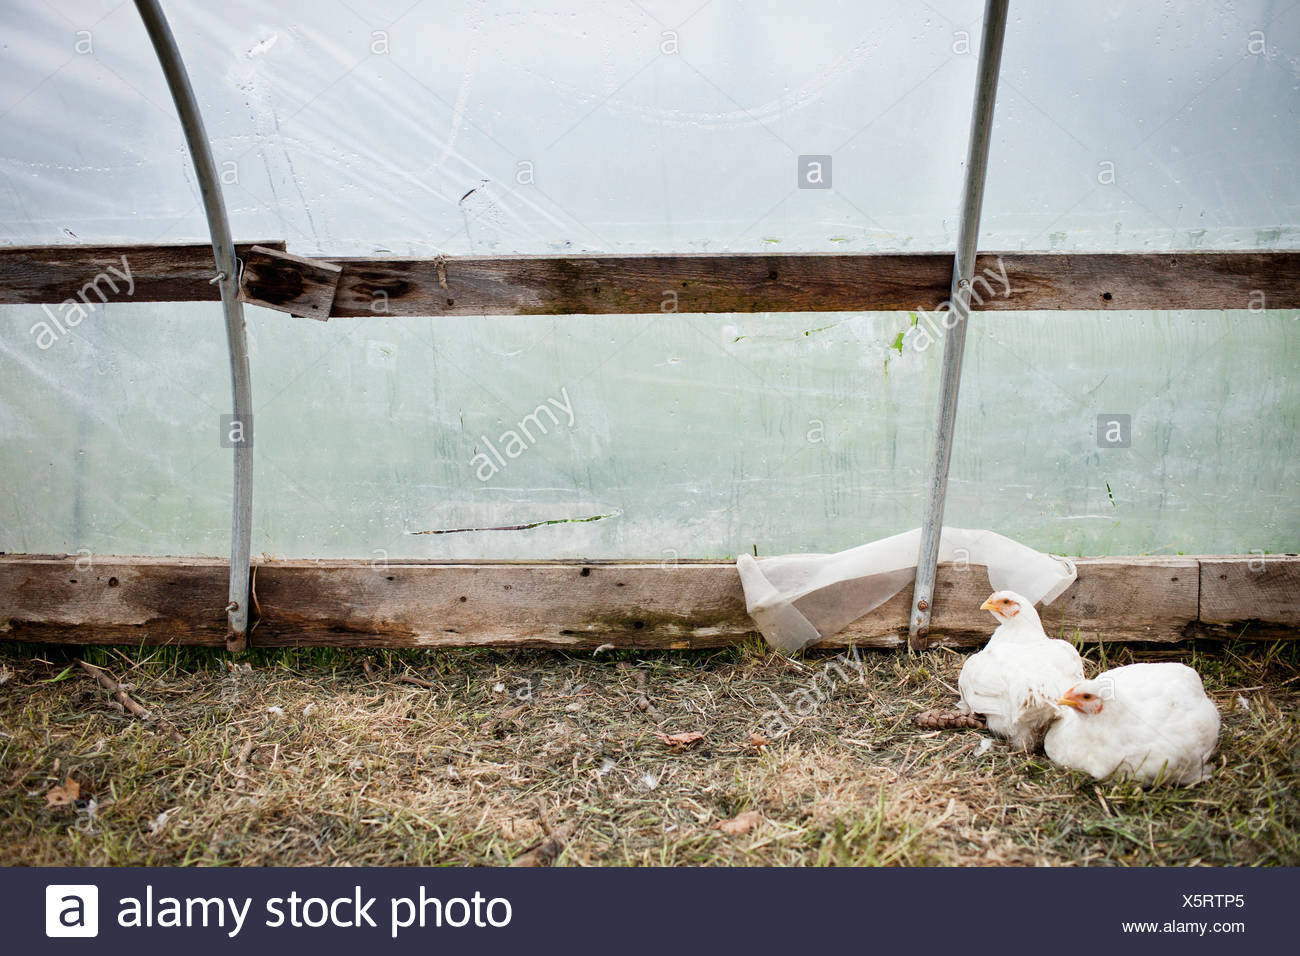 Chickens In Hen House Stock Photos & Chickens In Hen House Stock ...